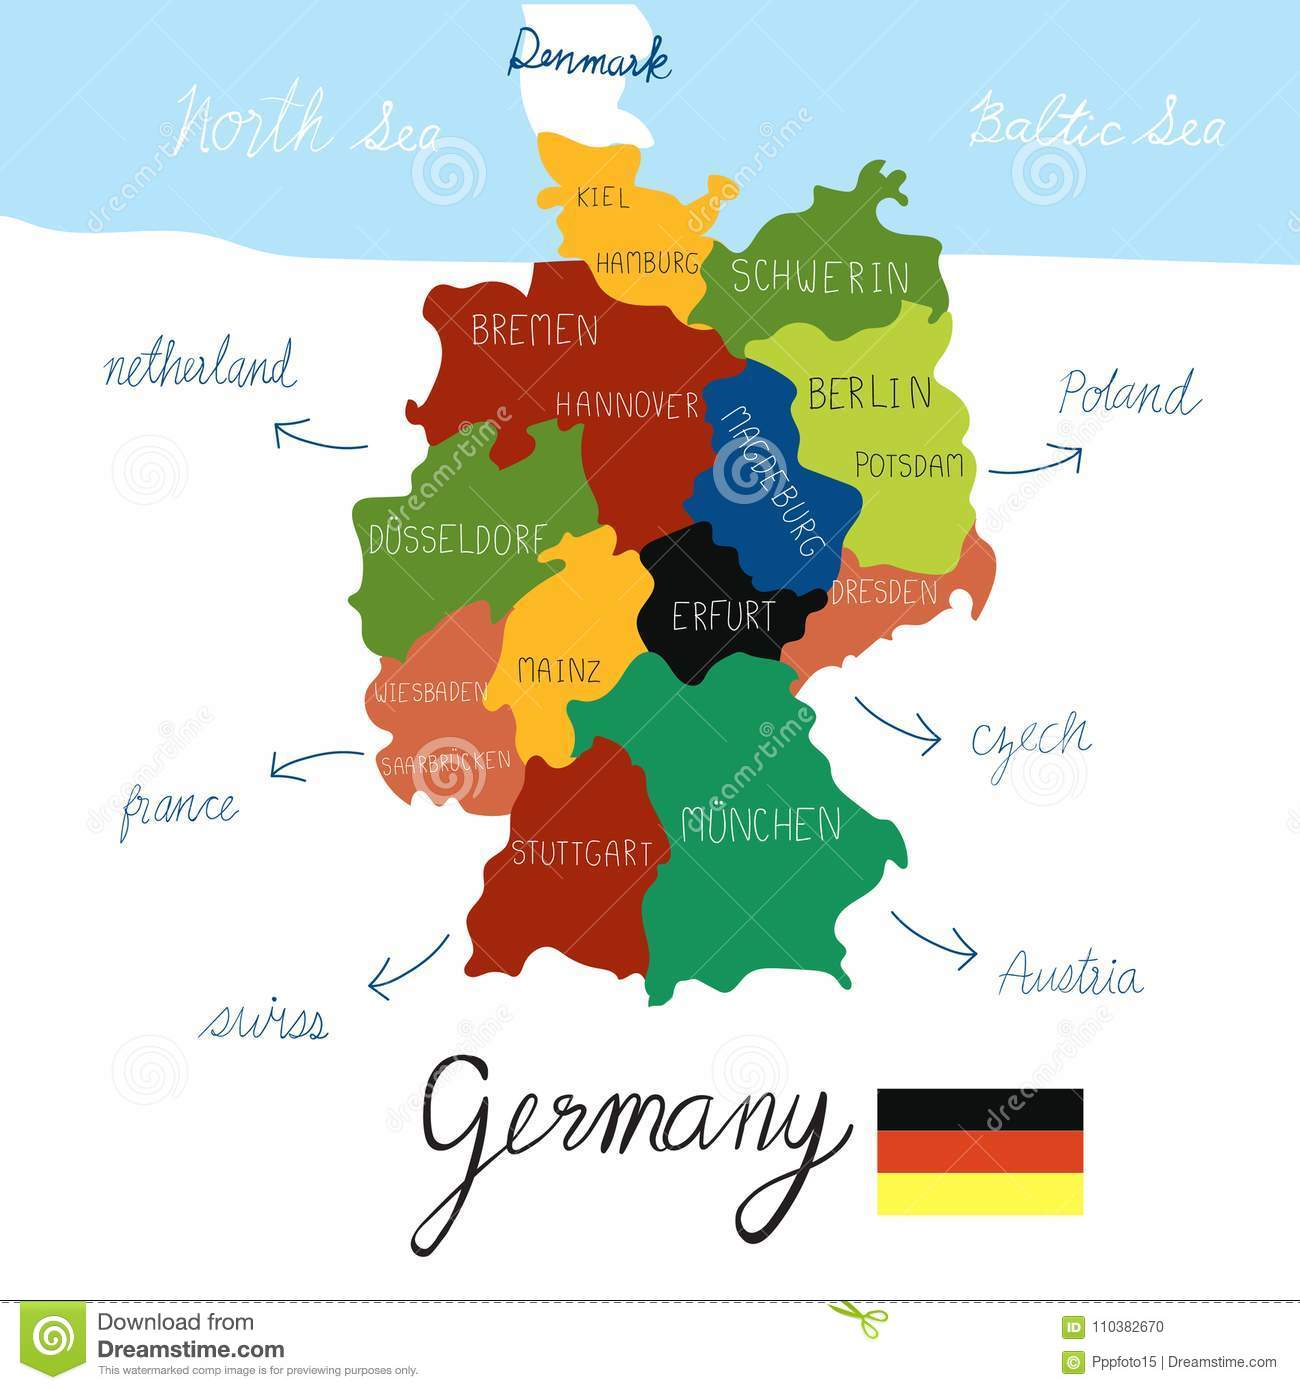 Germany Map Hand Draw Vector. Stock Vector - Illustration of ... on map of cardiff germany, map of ludwigshafen germany, map of oslo germany, map of brussels germany, map of bremen germany, map of rotterdam germany, transportation map of germany, map of birmingham germany, map of geilenkirchen germany, map of ratingen germany, map of kaiserslautern germany, map of paris germany, map of munchen germany, map of germany airports, map of mecklenburg vorpommern germany, map of st goar germany, map of antwerp germany, map of luneburg germany, map of konigsberg germany, map of bad homburg germany,